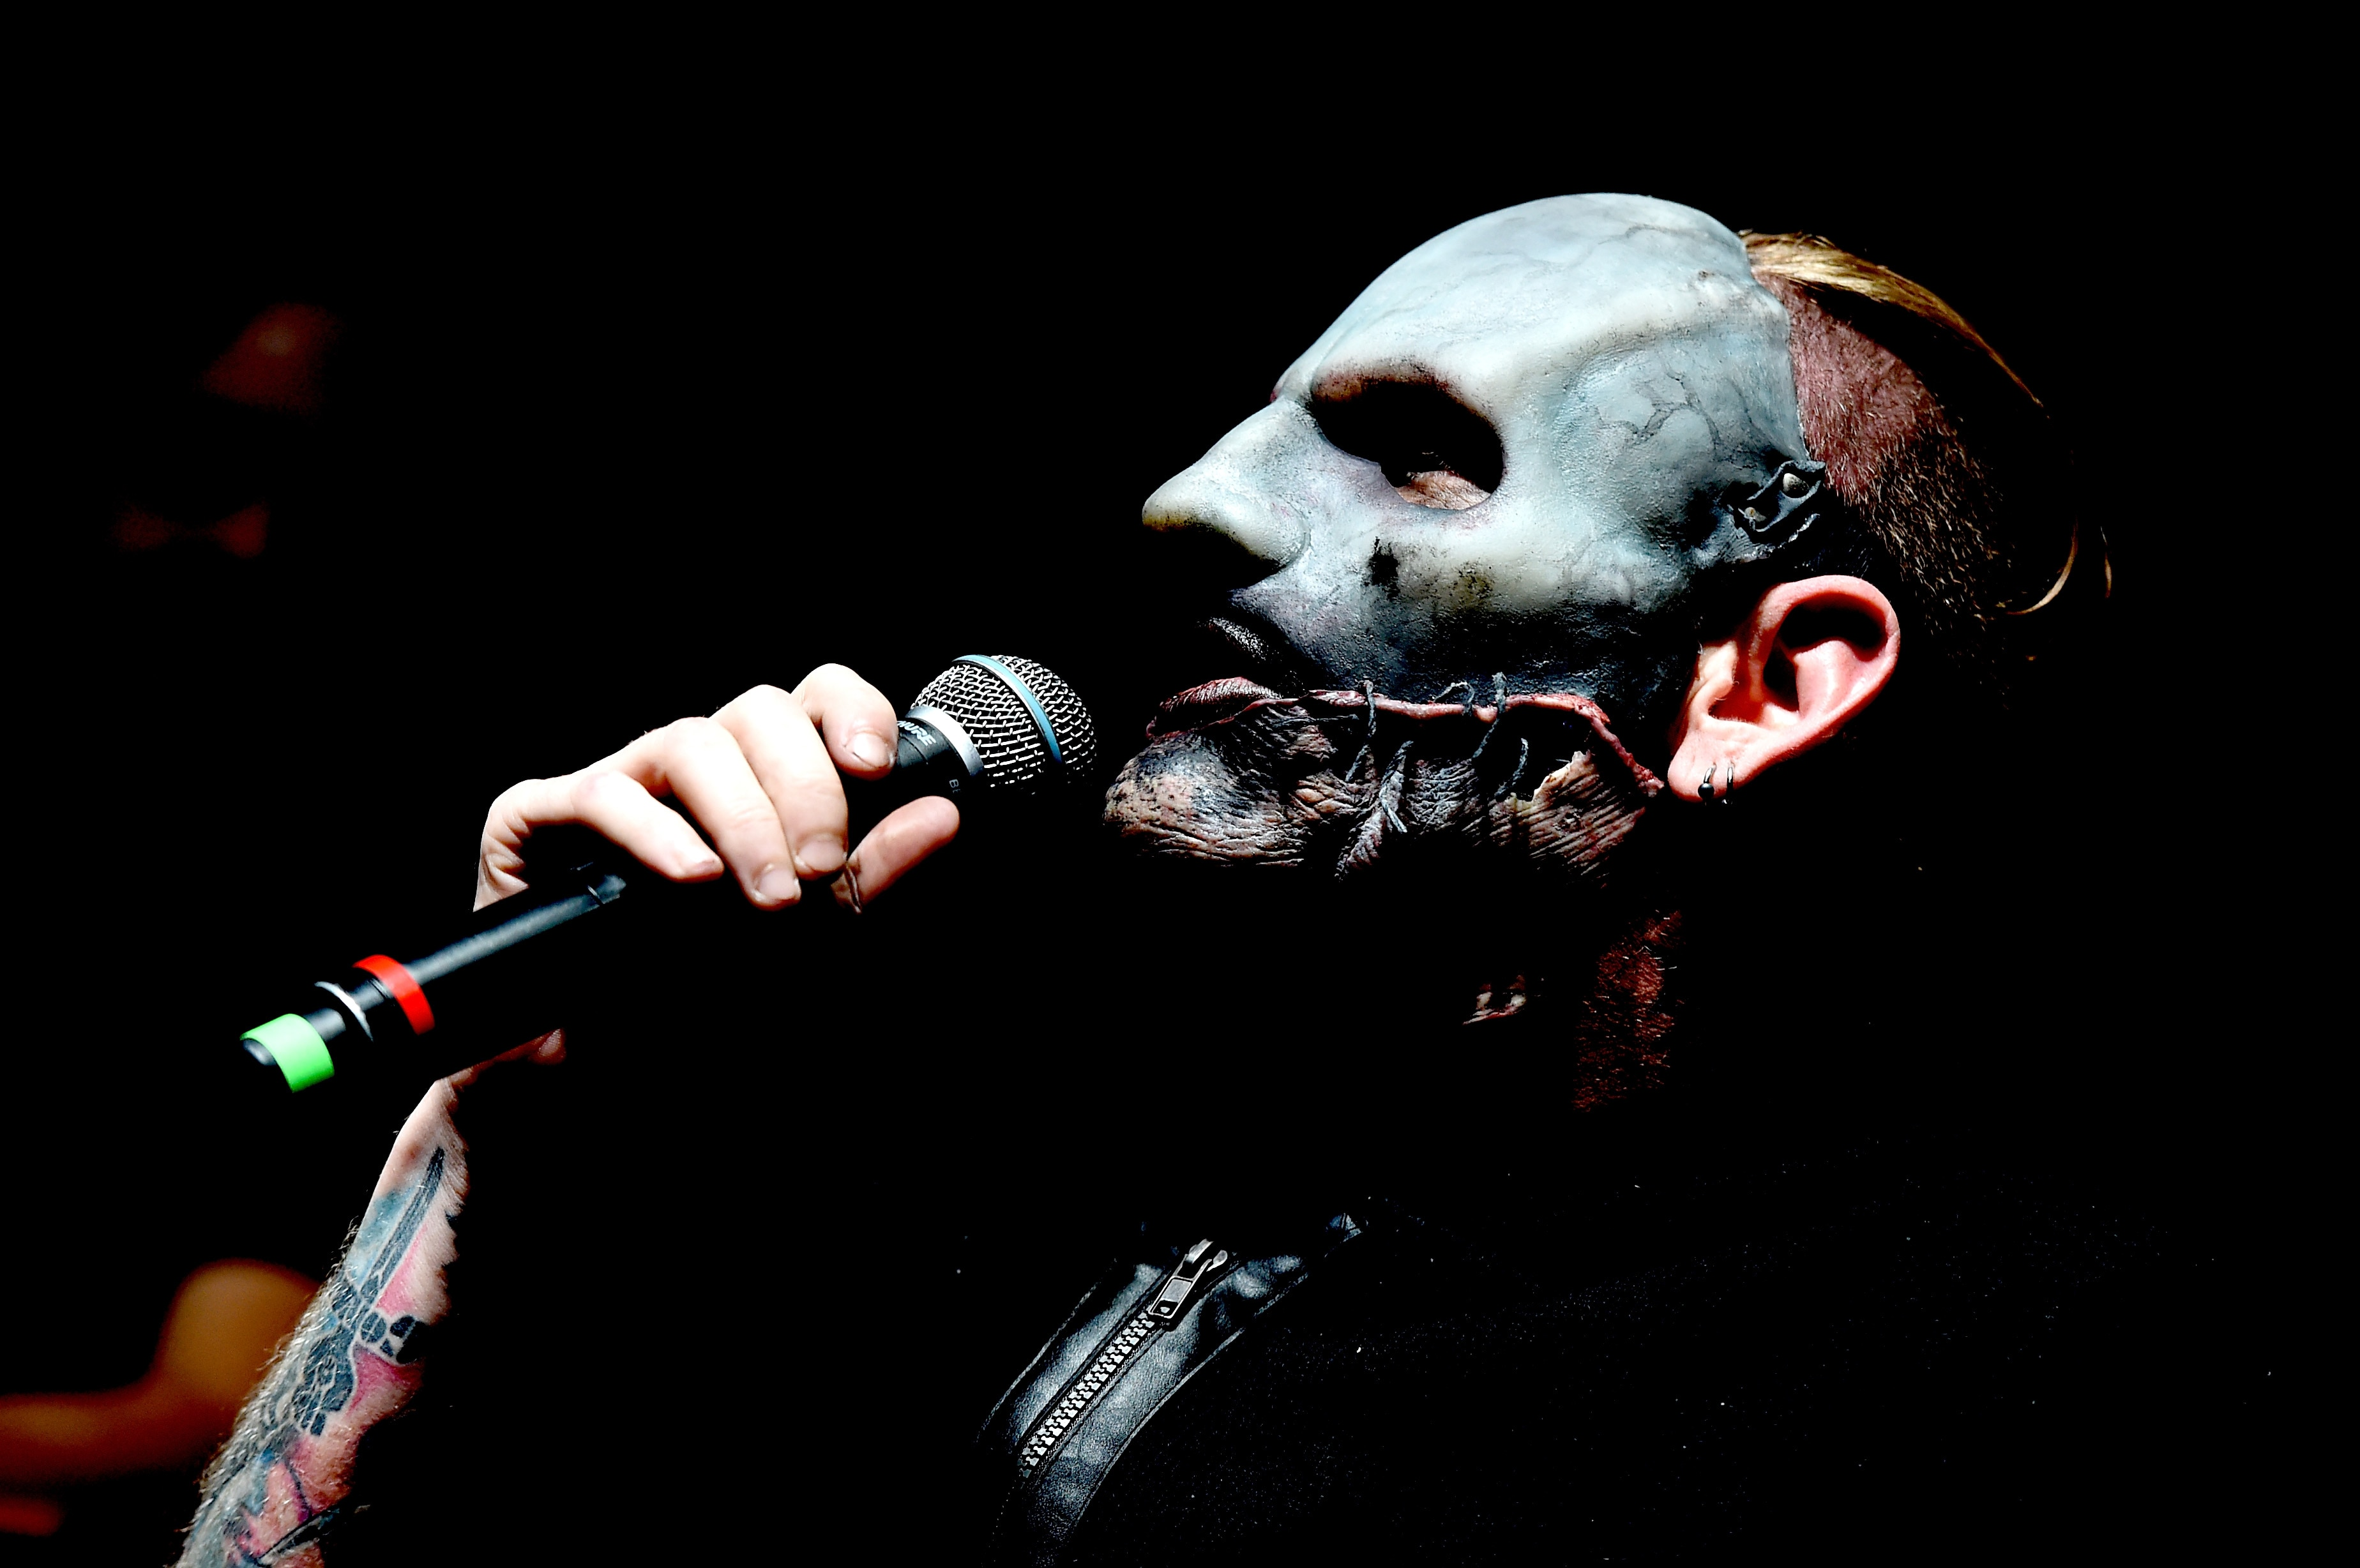 Corey Taylor Slipknot - 10 Famous Hard Rockers Who Were in Horror Movies